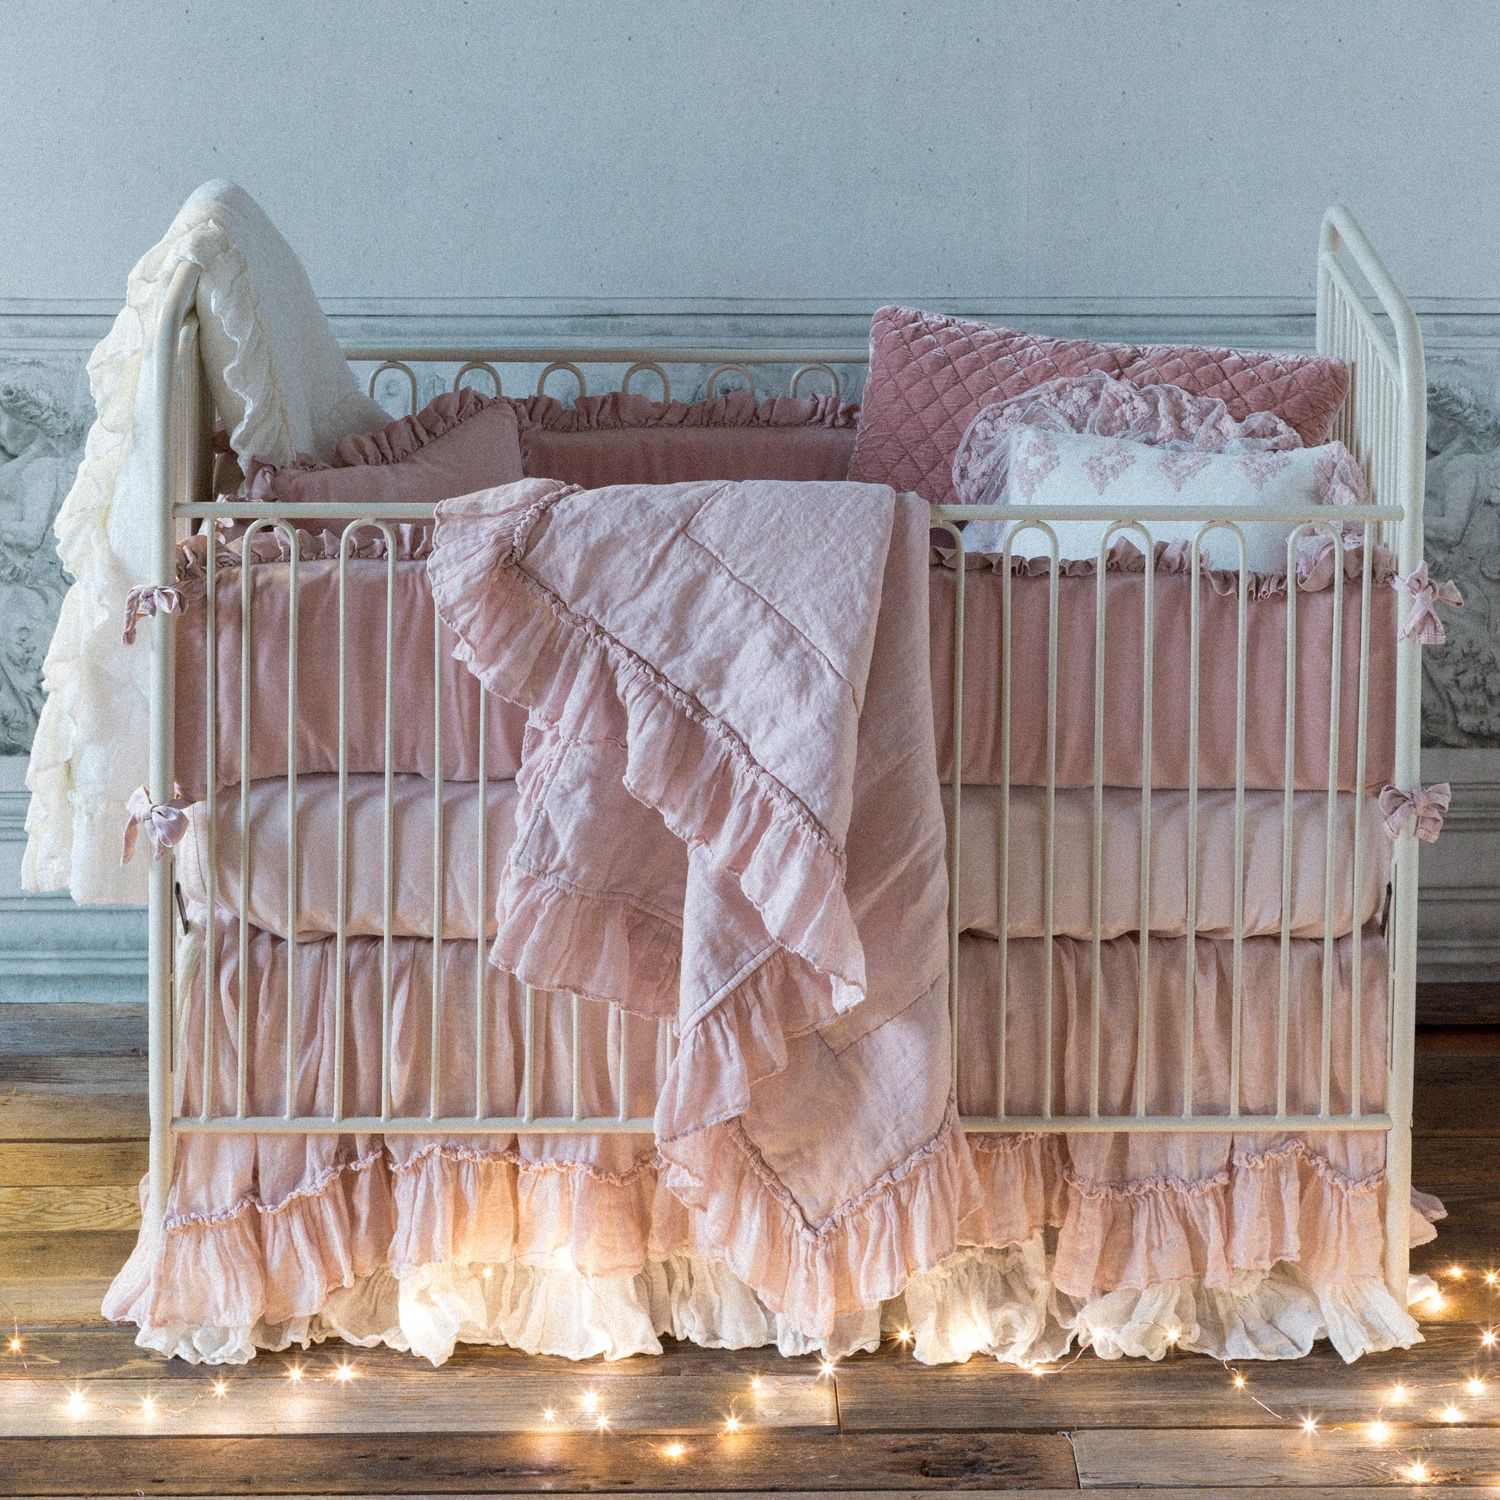 The Bella Notte Cotton Velvet And Whisper Linen Crib Set